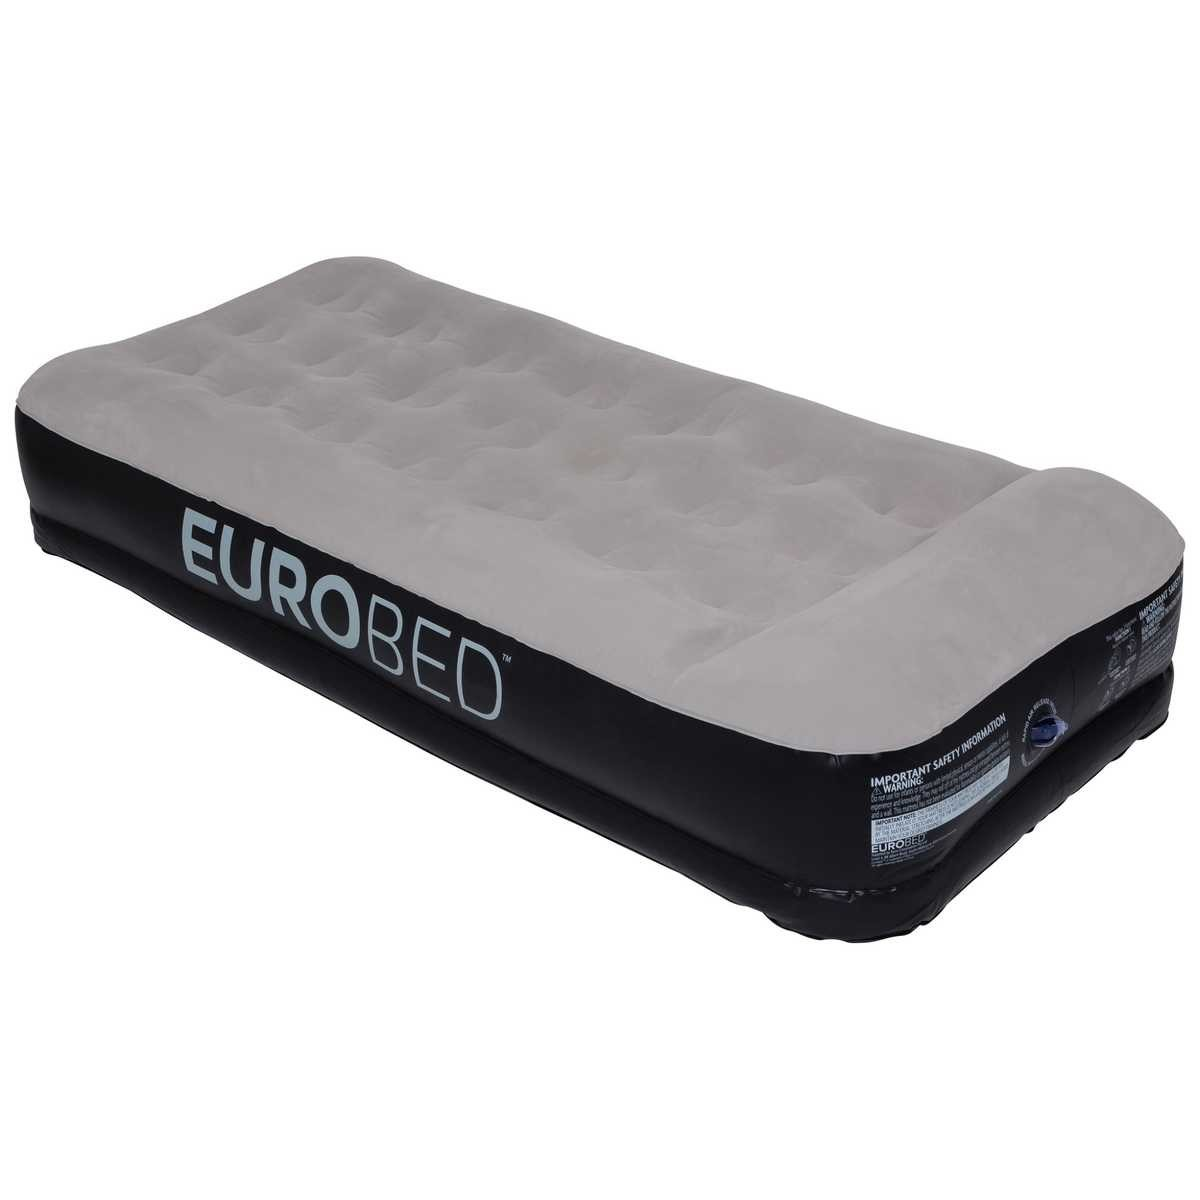 Single Mattress Brisbane Eurobed Luxury Single Air Bed